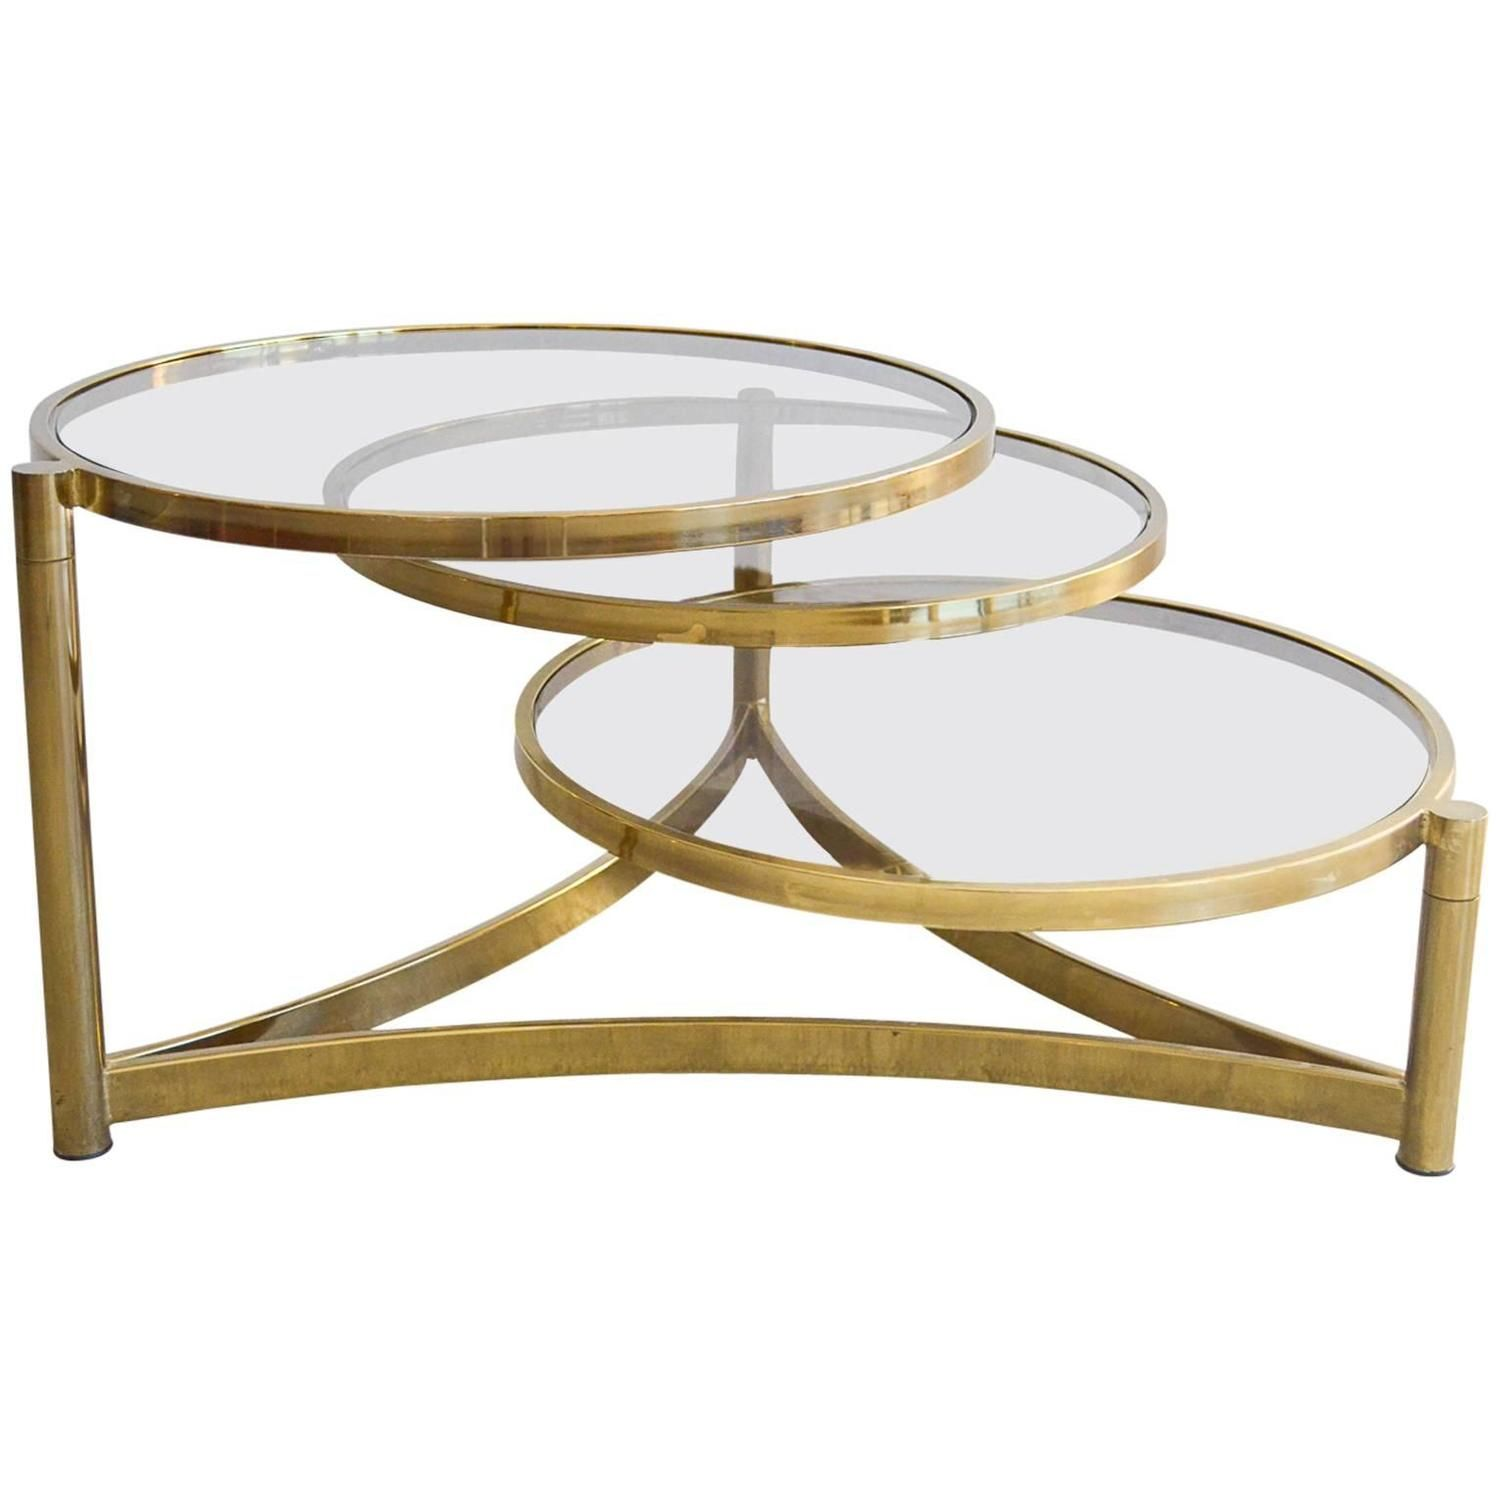 Milo Baughman Tri Level Brass And Glass Swivel Coffee Table   From A Unique  Collection Of